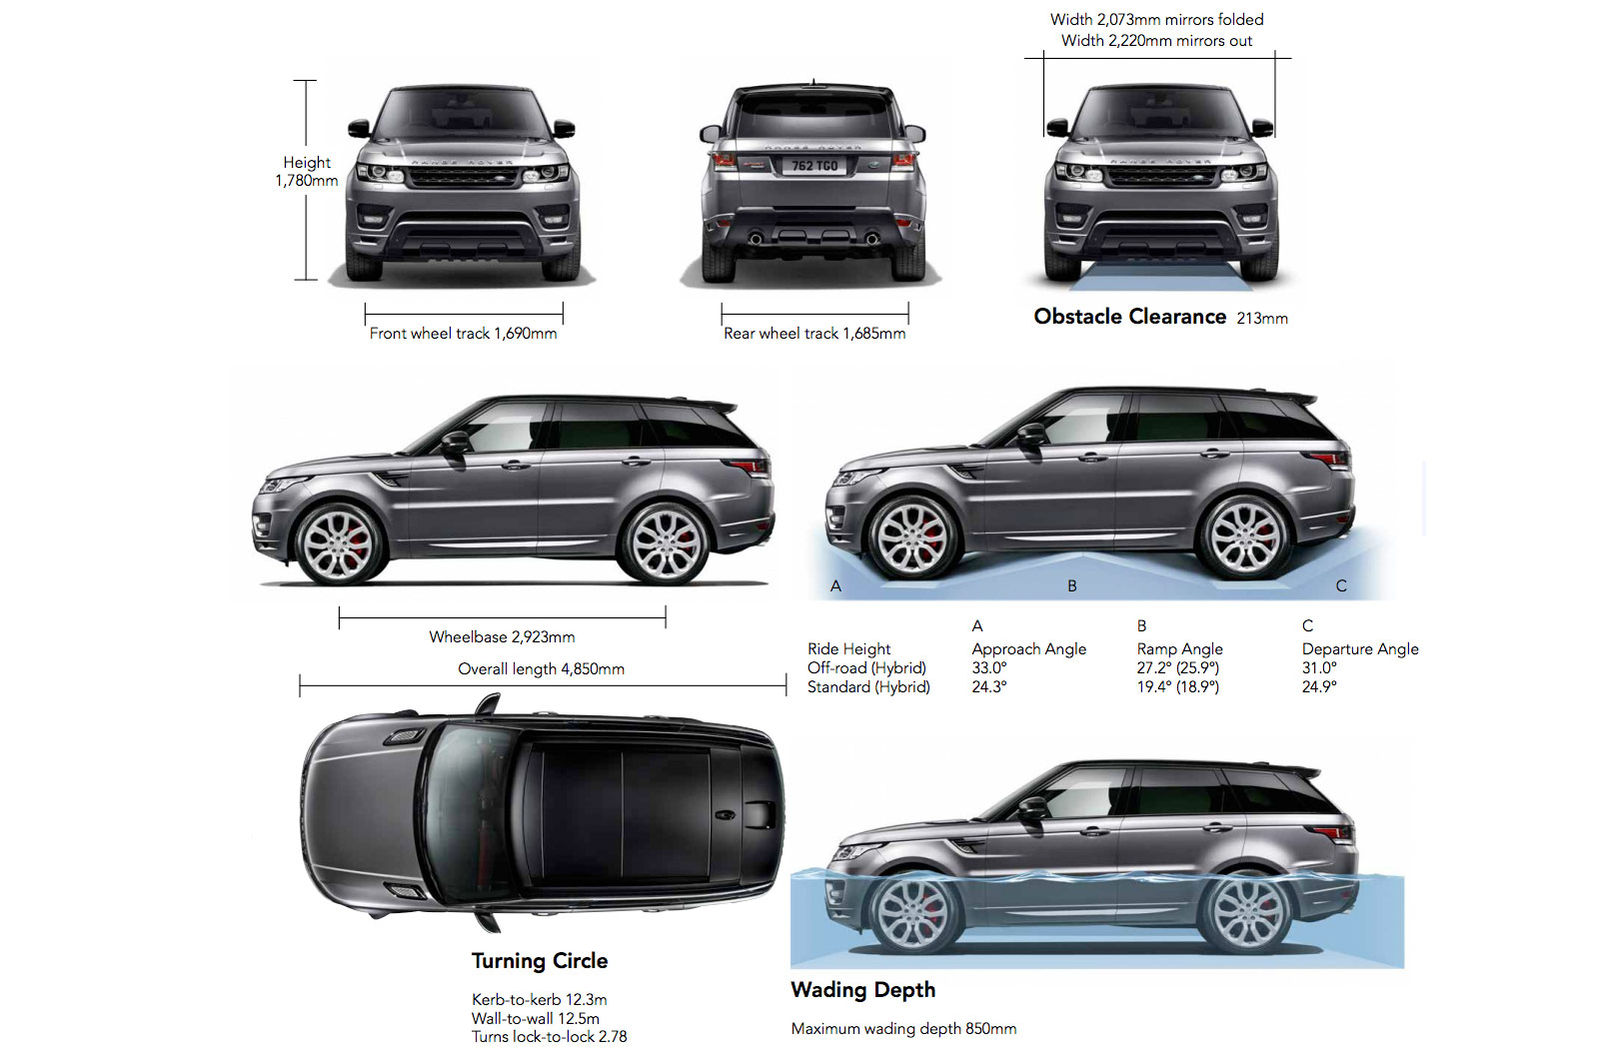 Land Rover Height Range Rover Sport Dimensions Guide Carwow